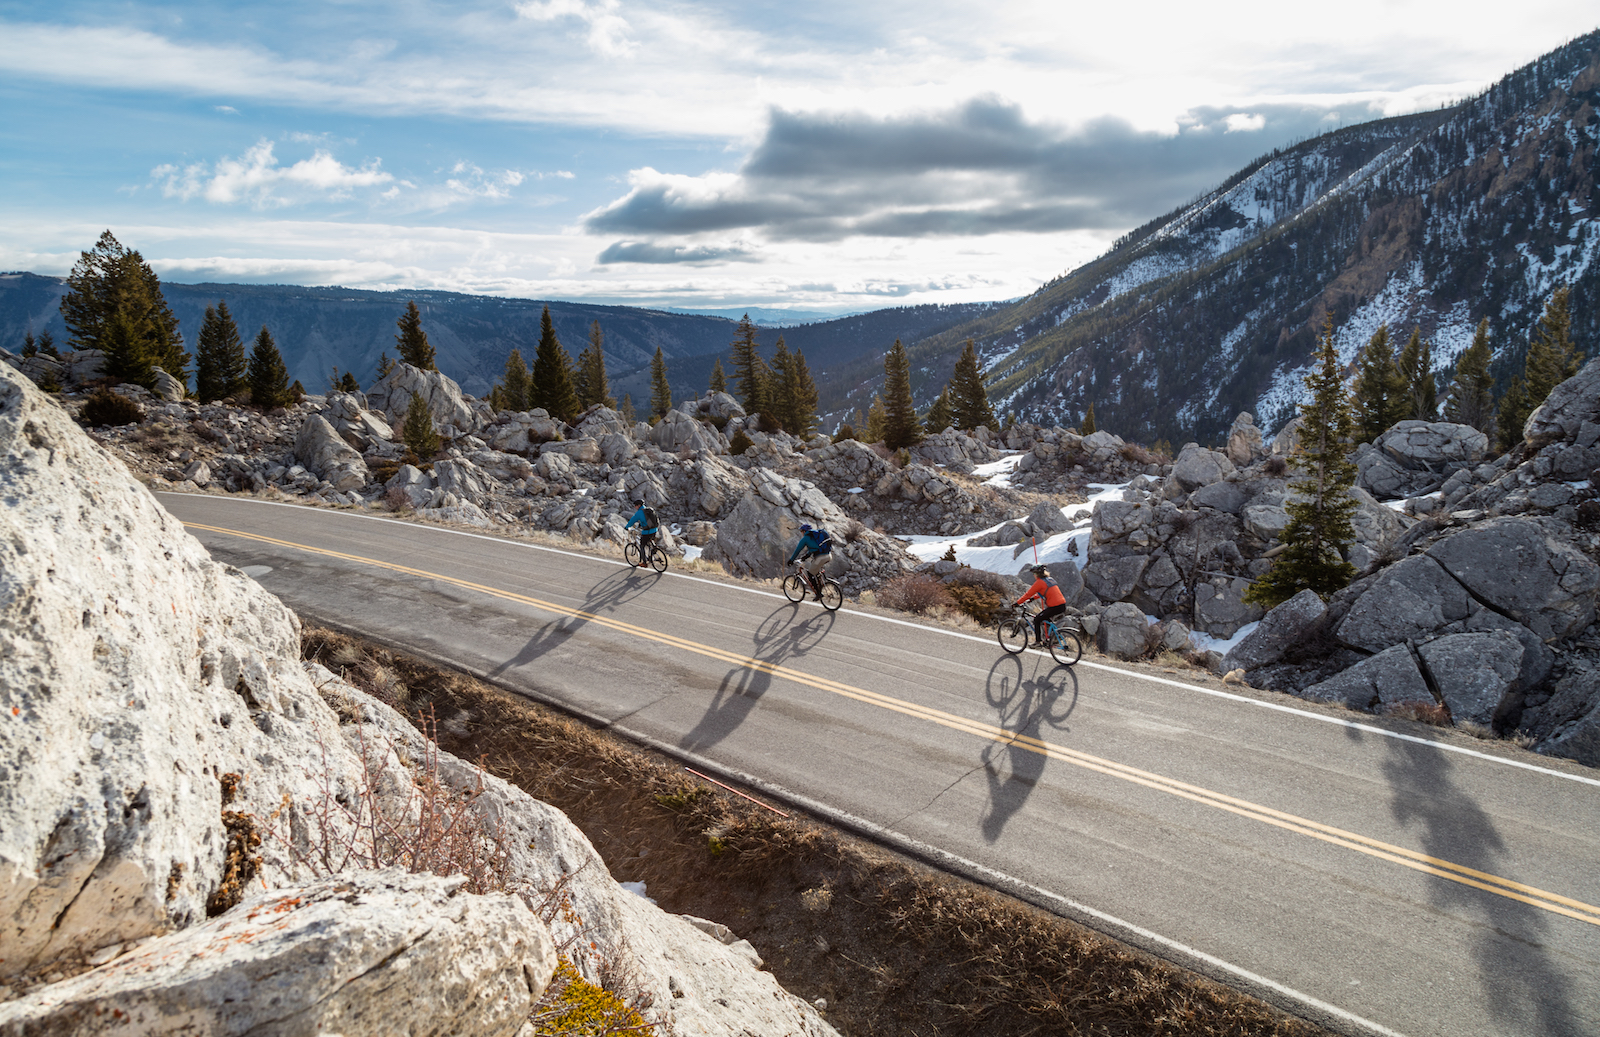 Car-free Bike Paths Open at Yellowstone and Grand Teton National Parks for Limited Time